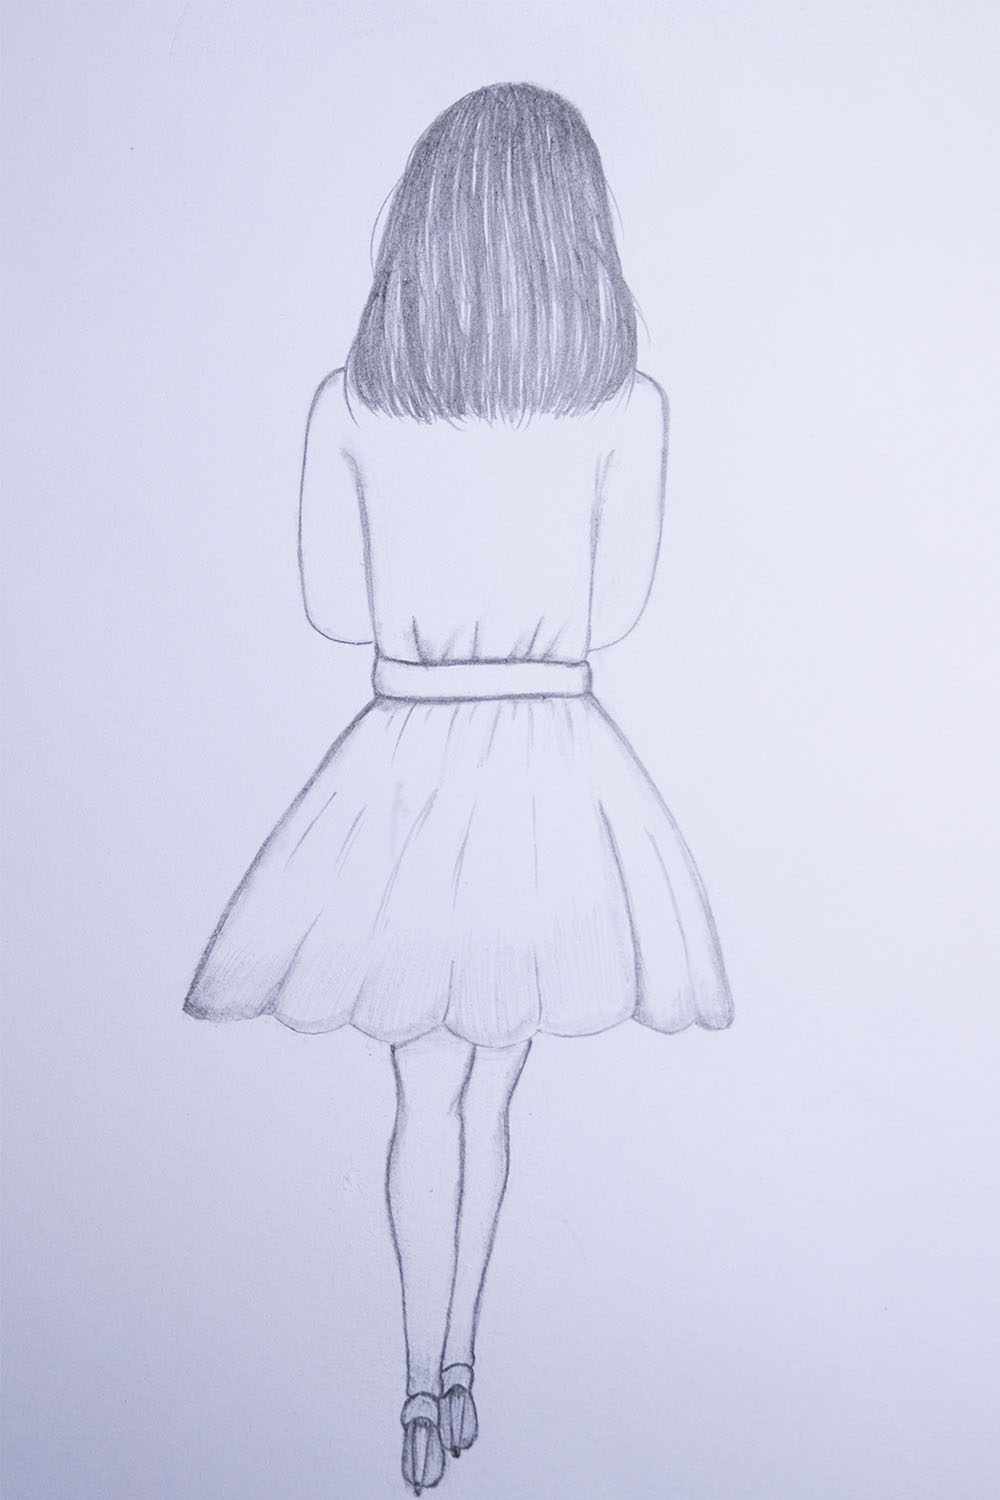 how to draw a girl in a dress easy step by step